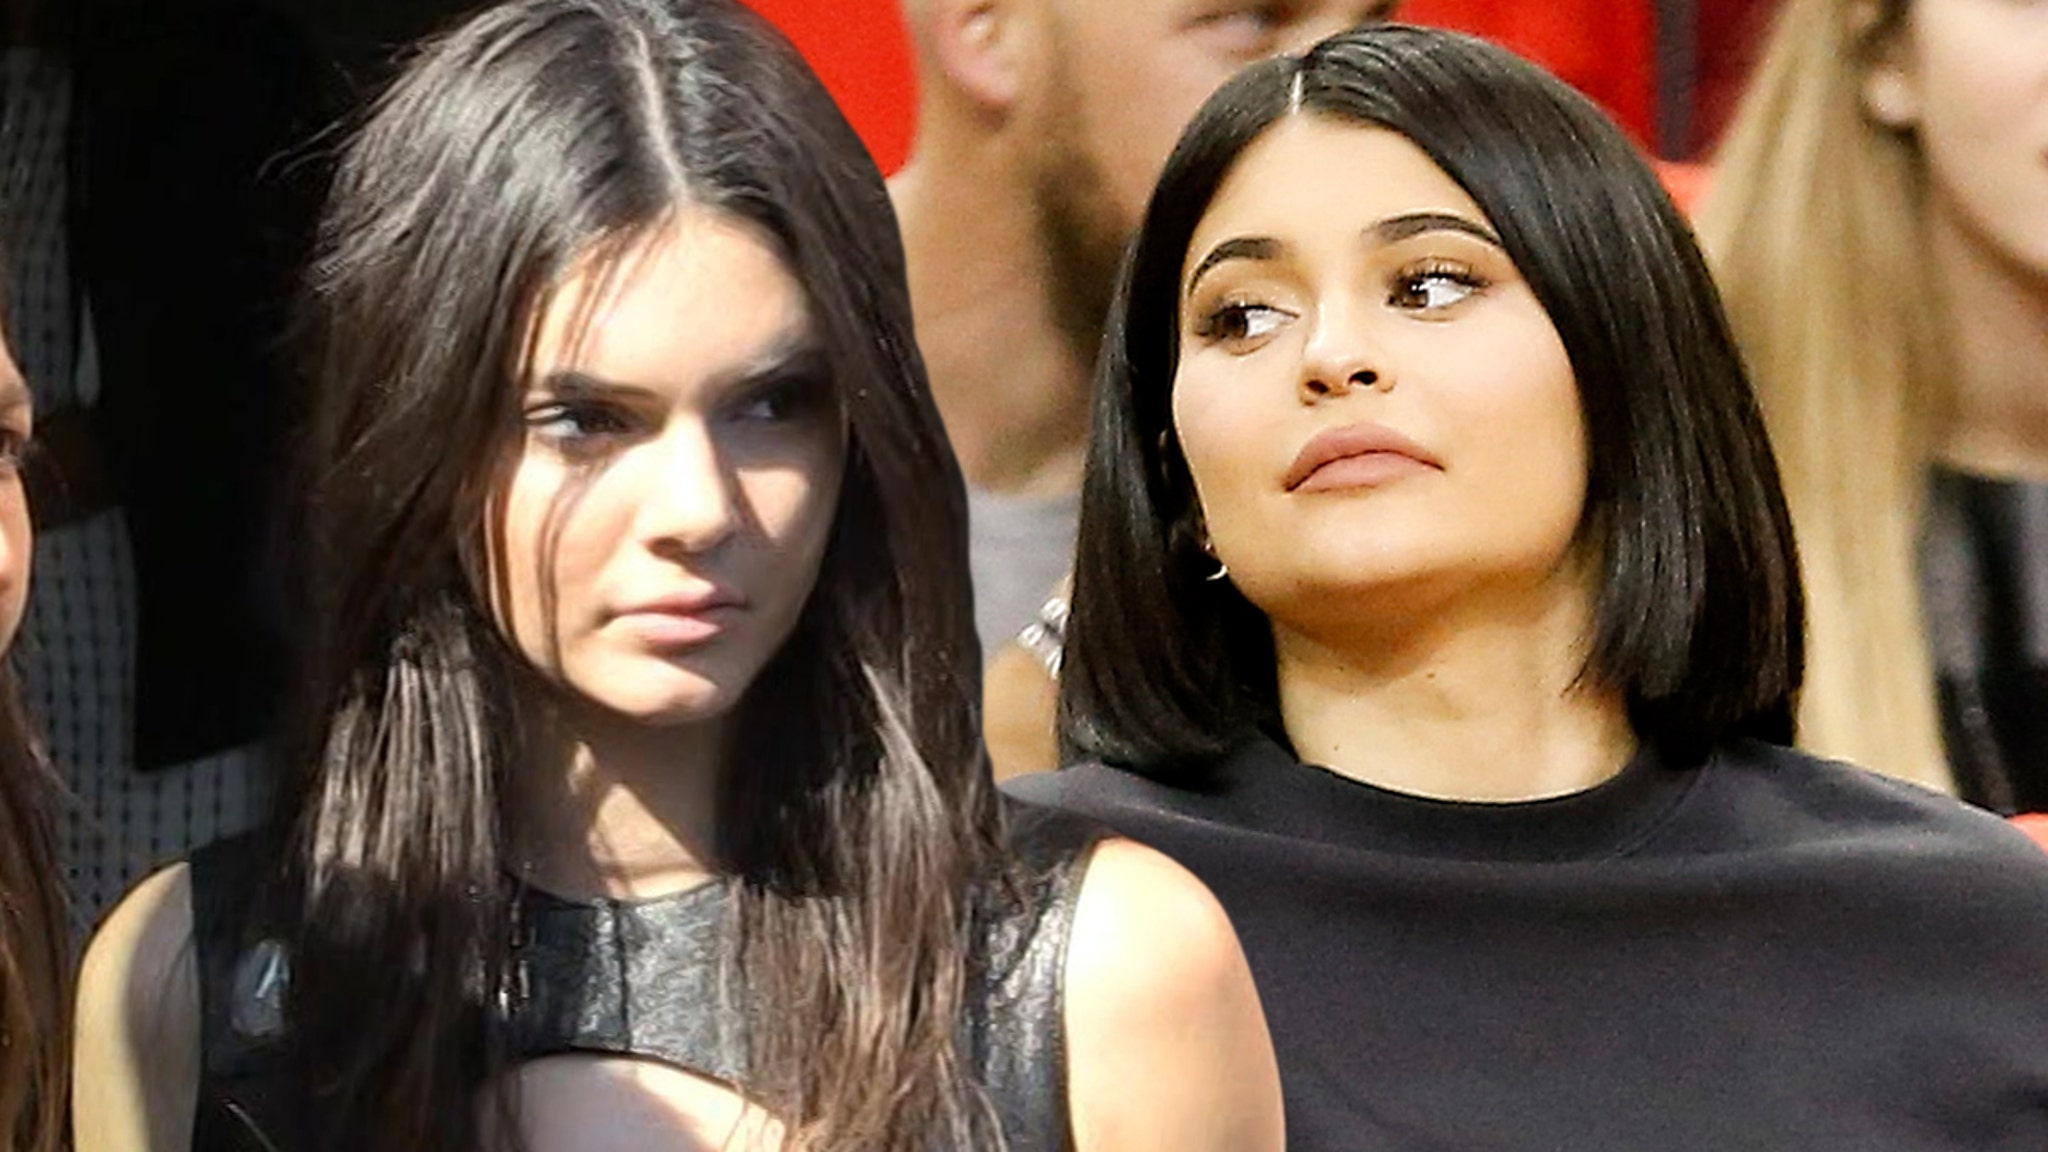 Kylie and Kendall Jenner's Companies Sued Over Lacy